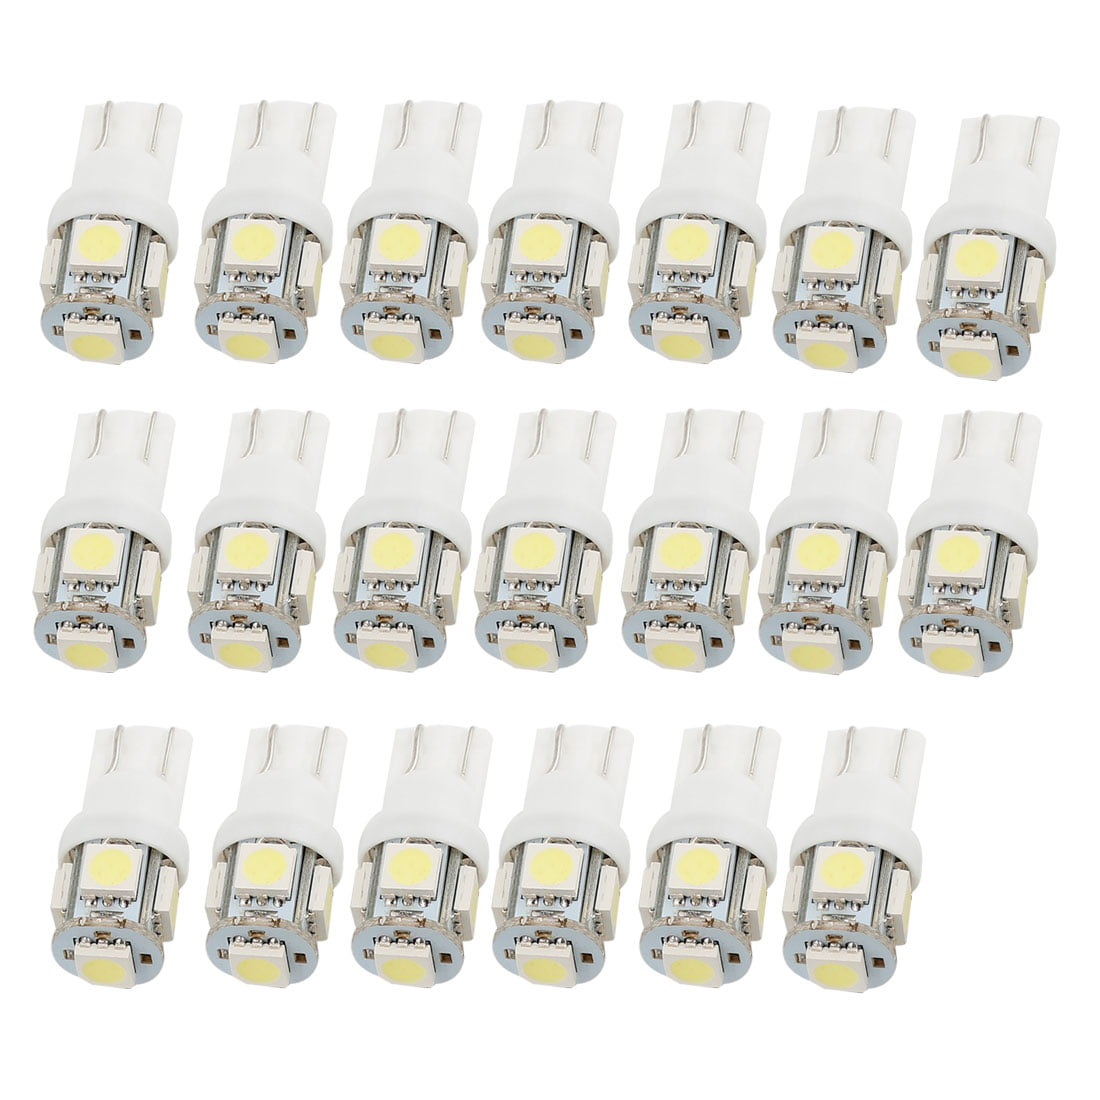 20x T10 5050 W5W 5 SMD 194 168 Interior LED White Car Side Wedge Tail Light Lamp